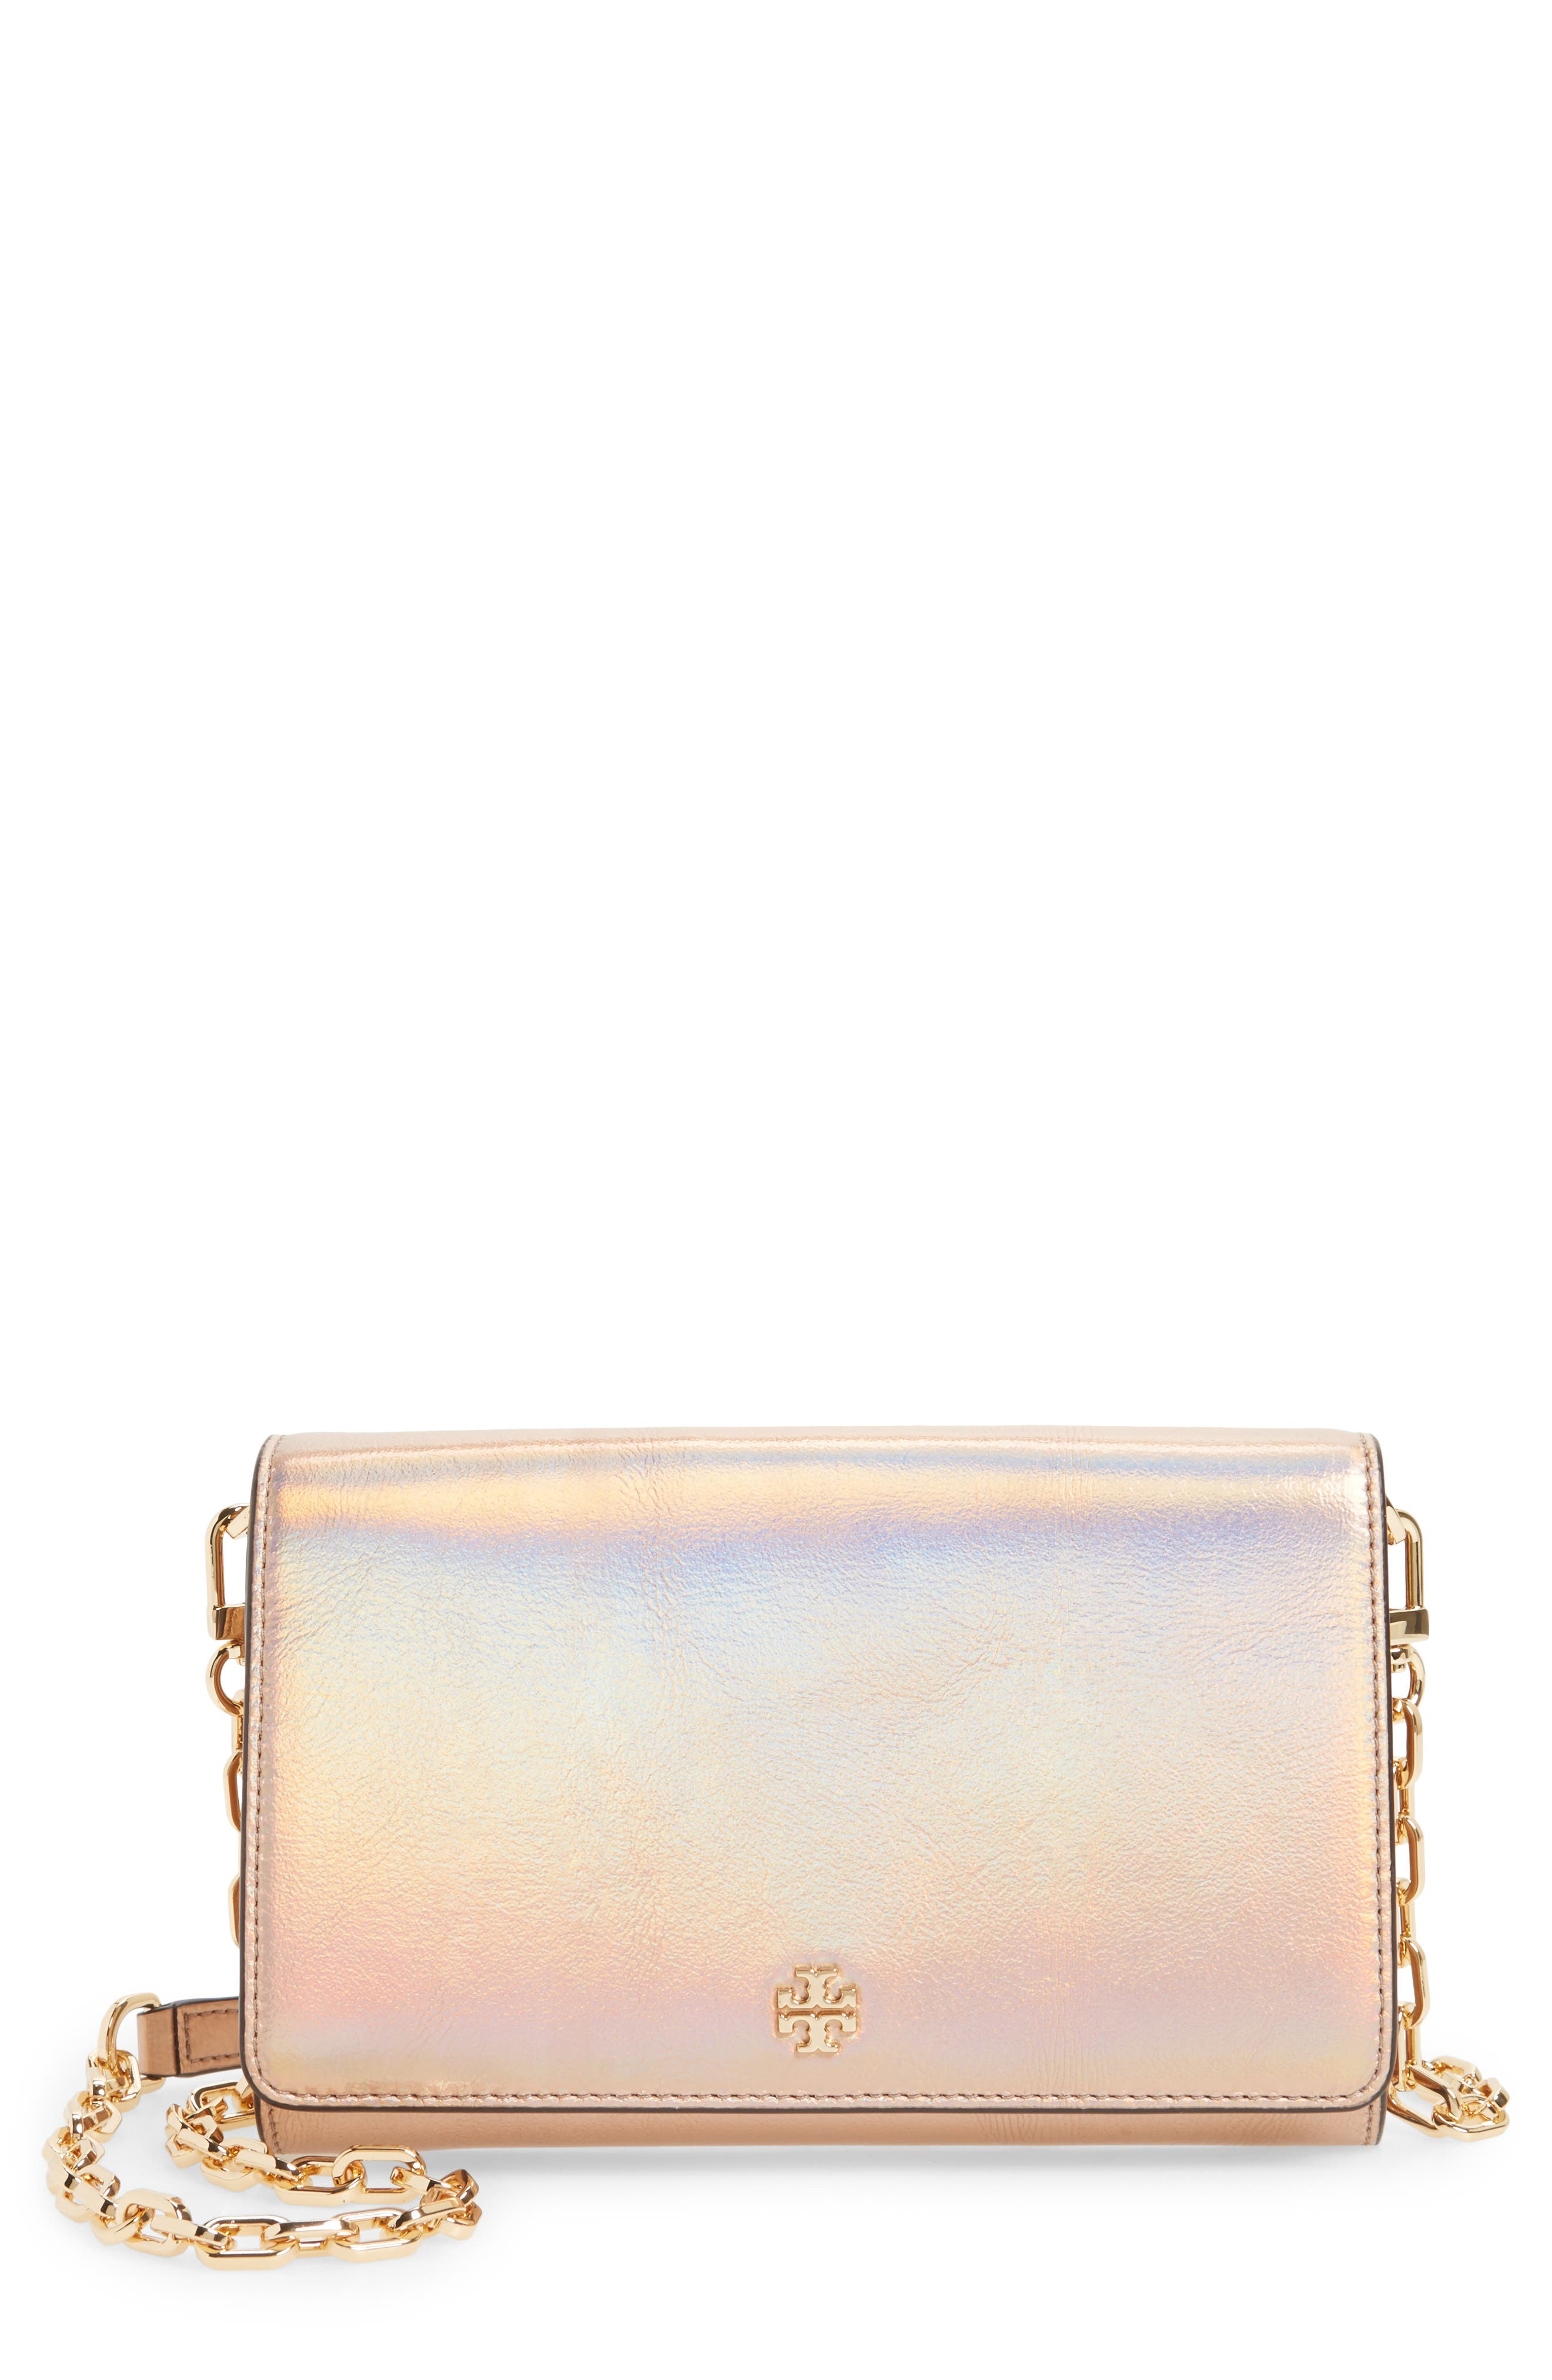 Tory Burch Robinson Metallic Leather Wallet on a Chain